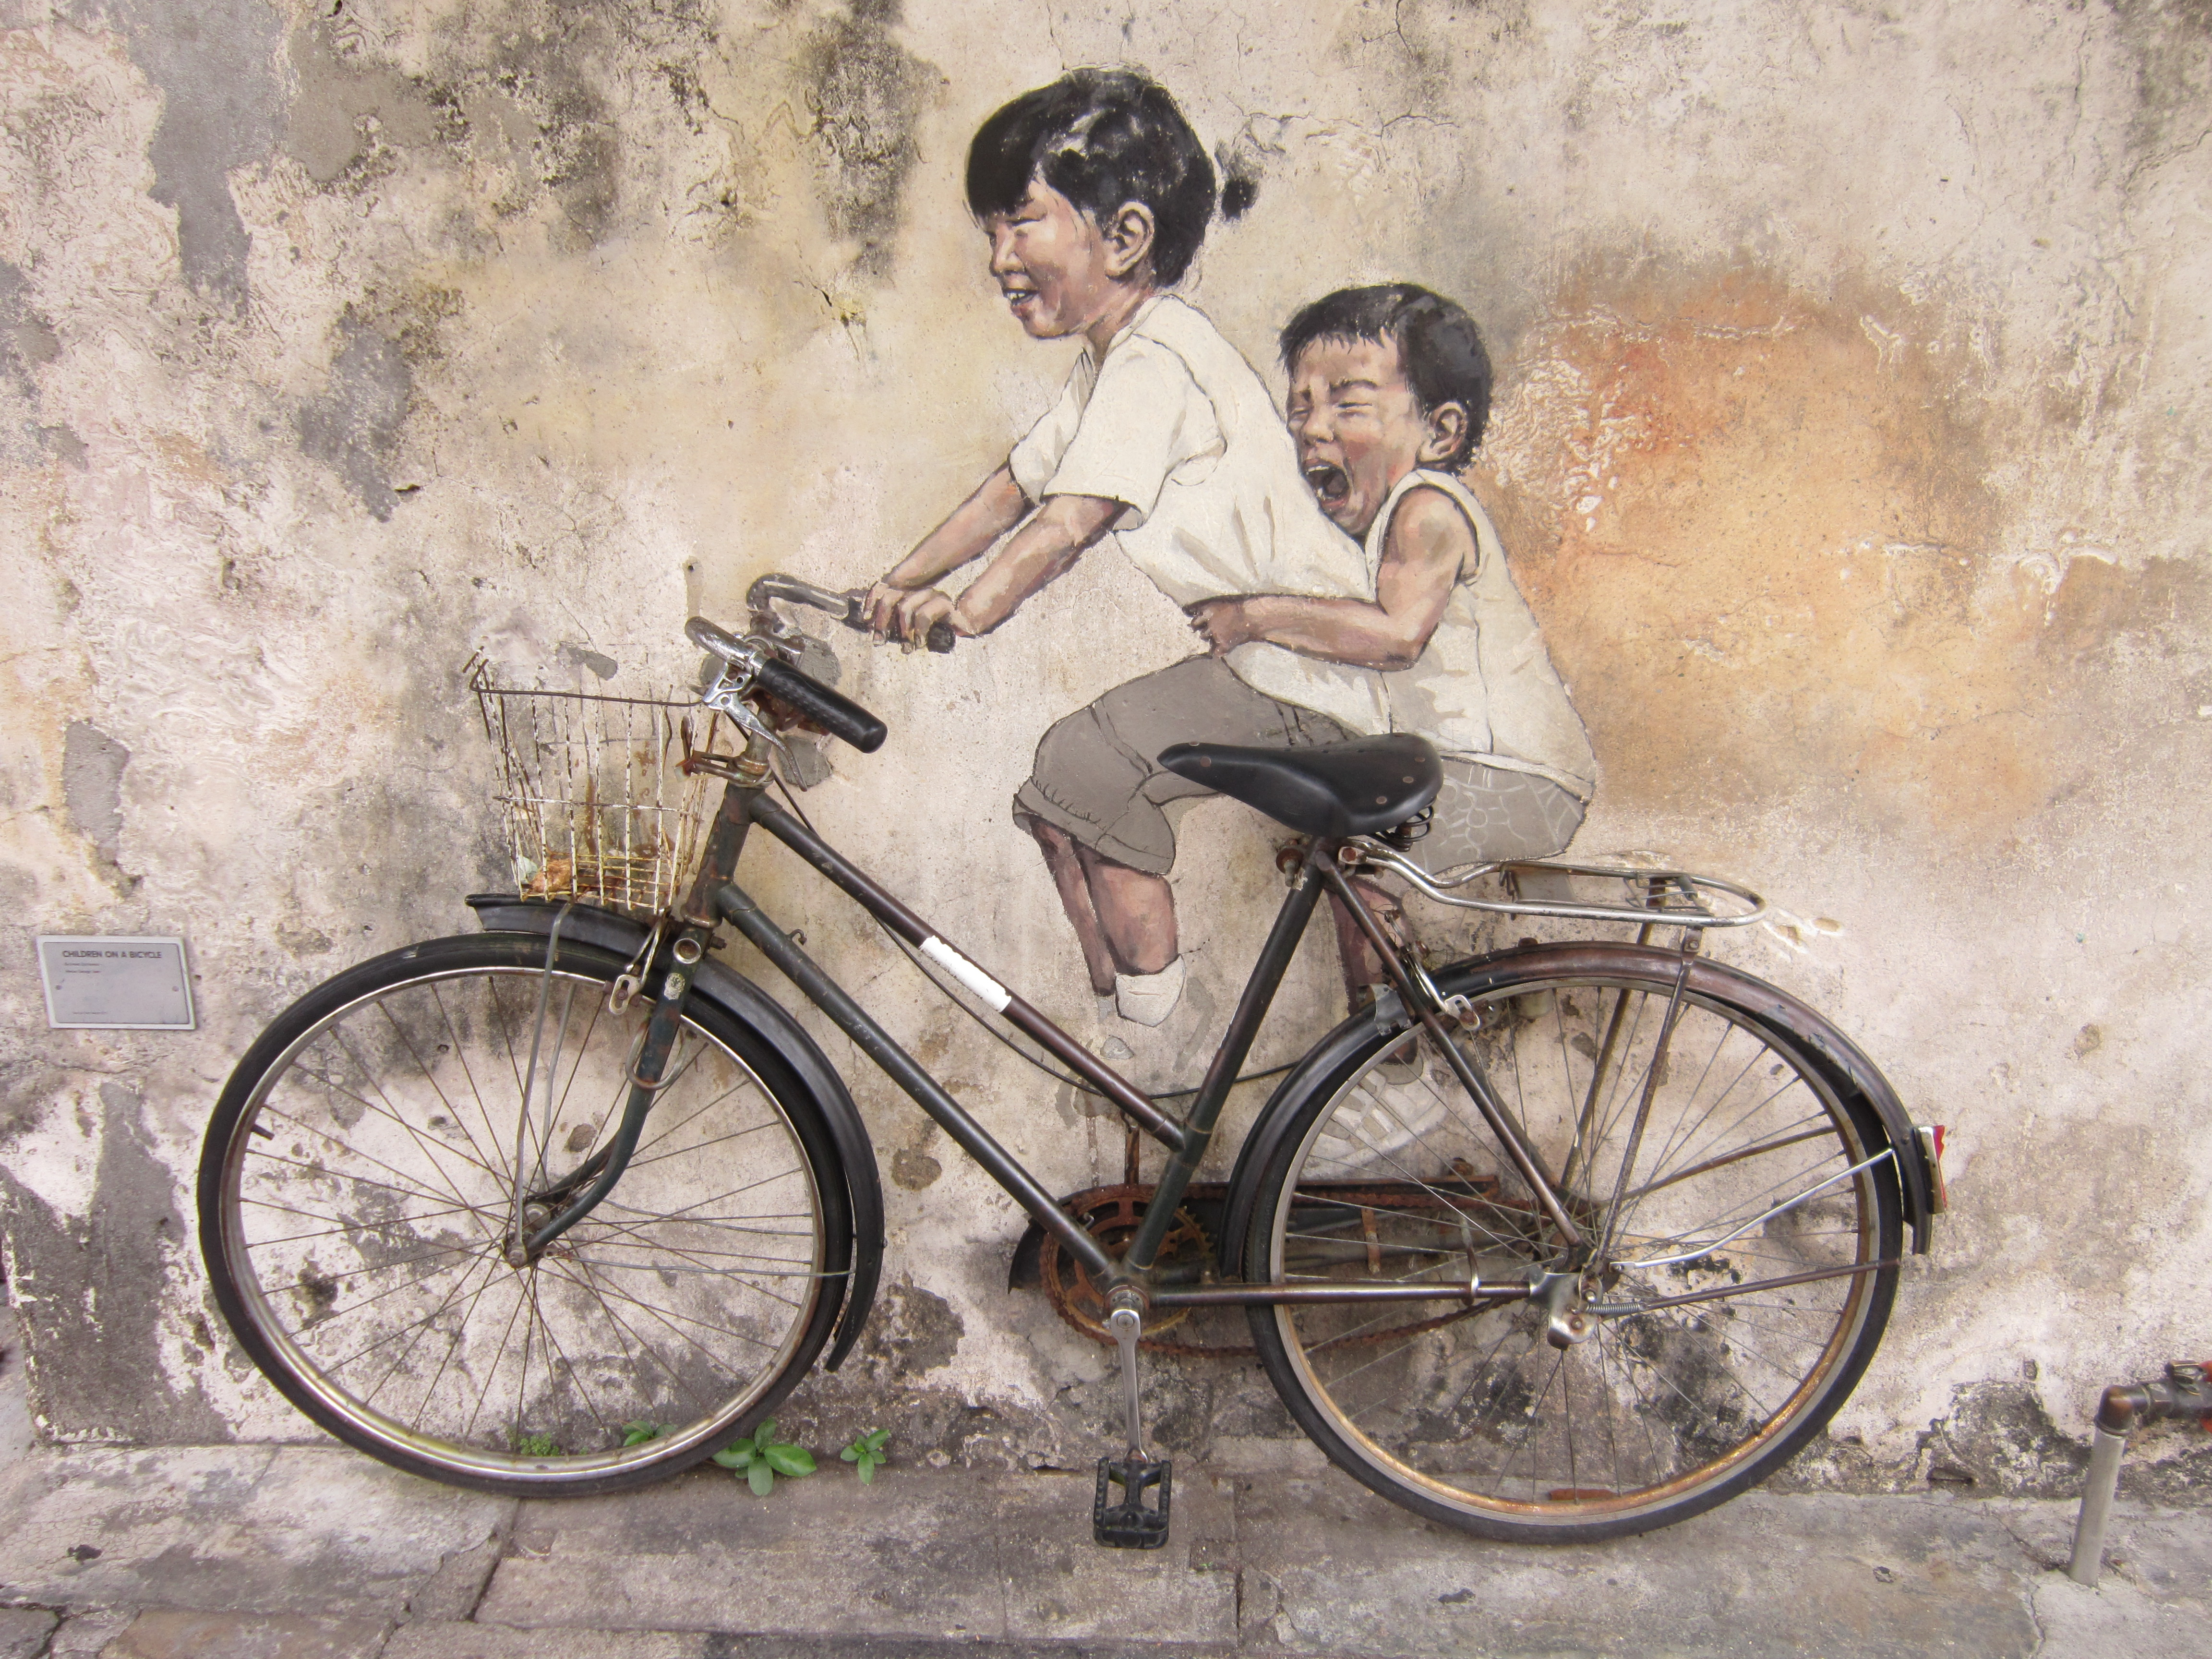 Penang Street Art Little Children On Bicycle